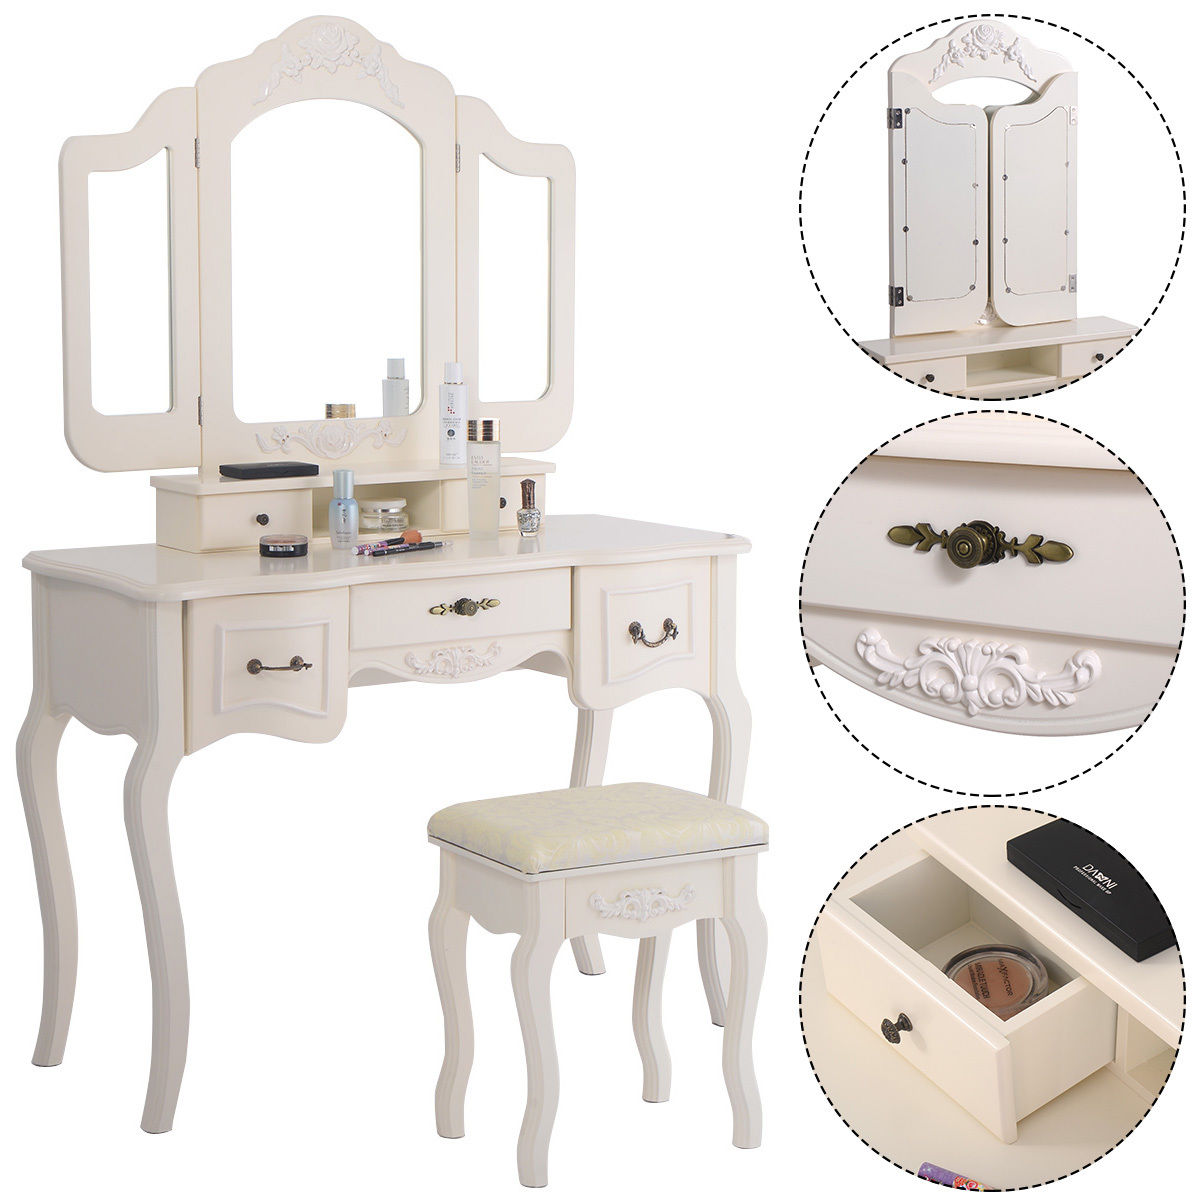 Costway Tri Folding Vintage White Vanity Makeup Dressing Table Set 5 Drawers &stool by Costway